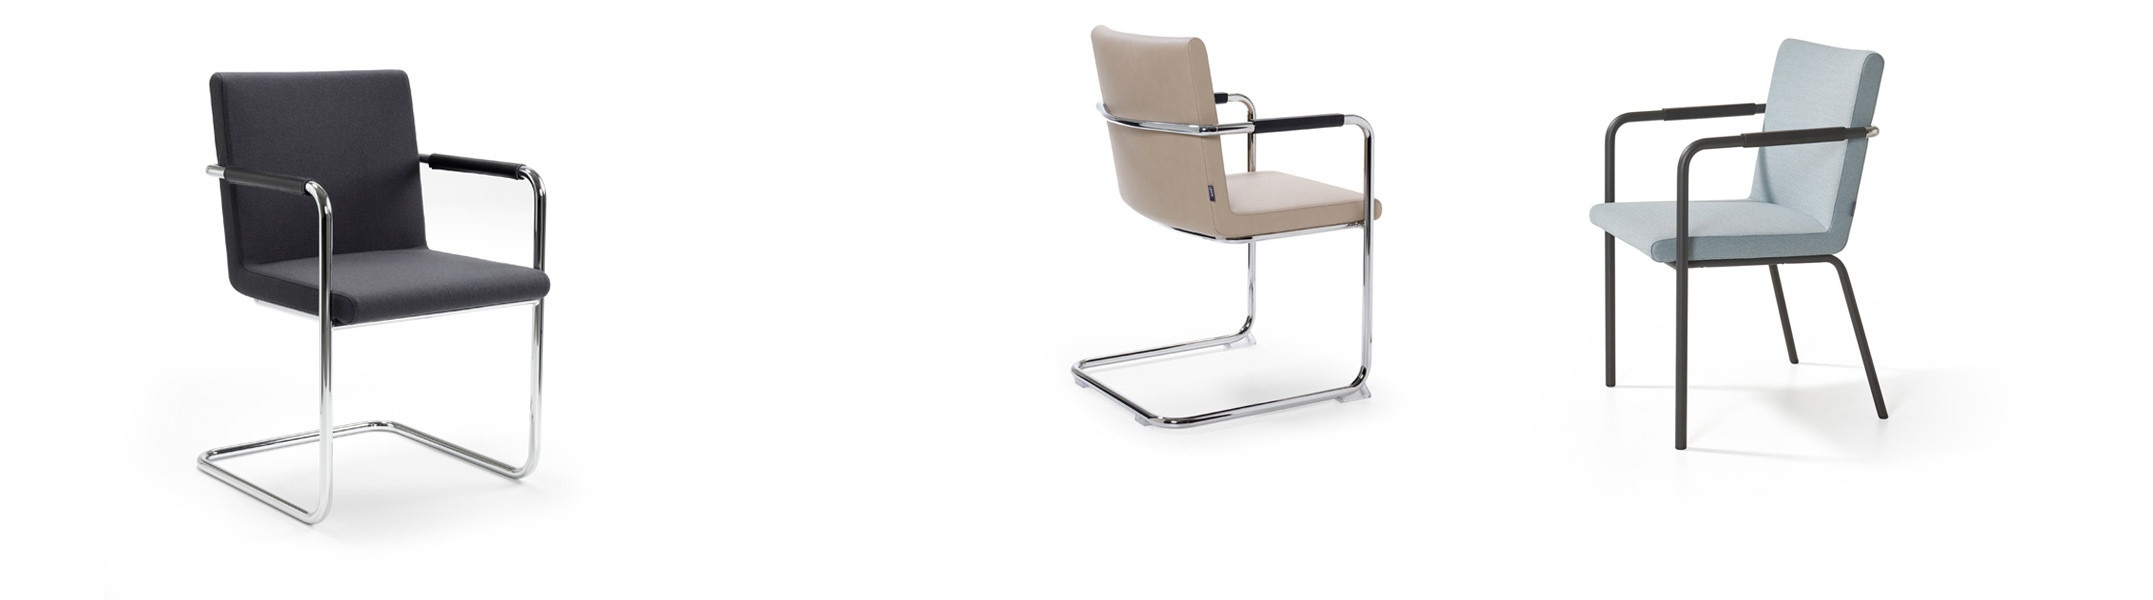 Comfortable conference chairs Icon Plus